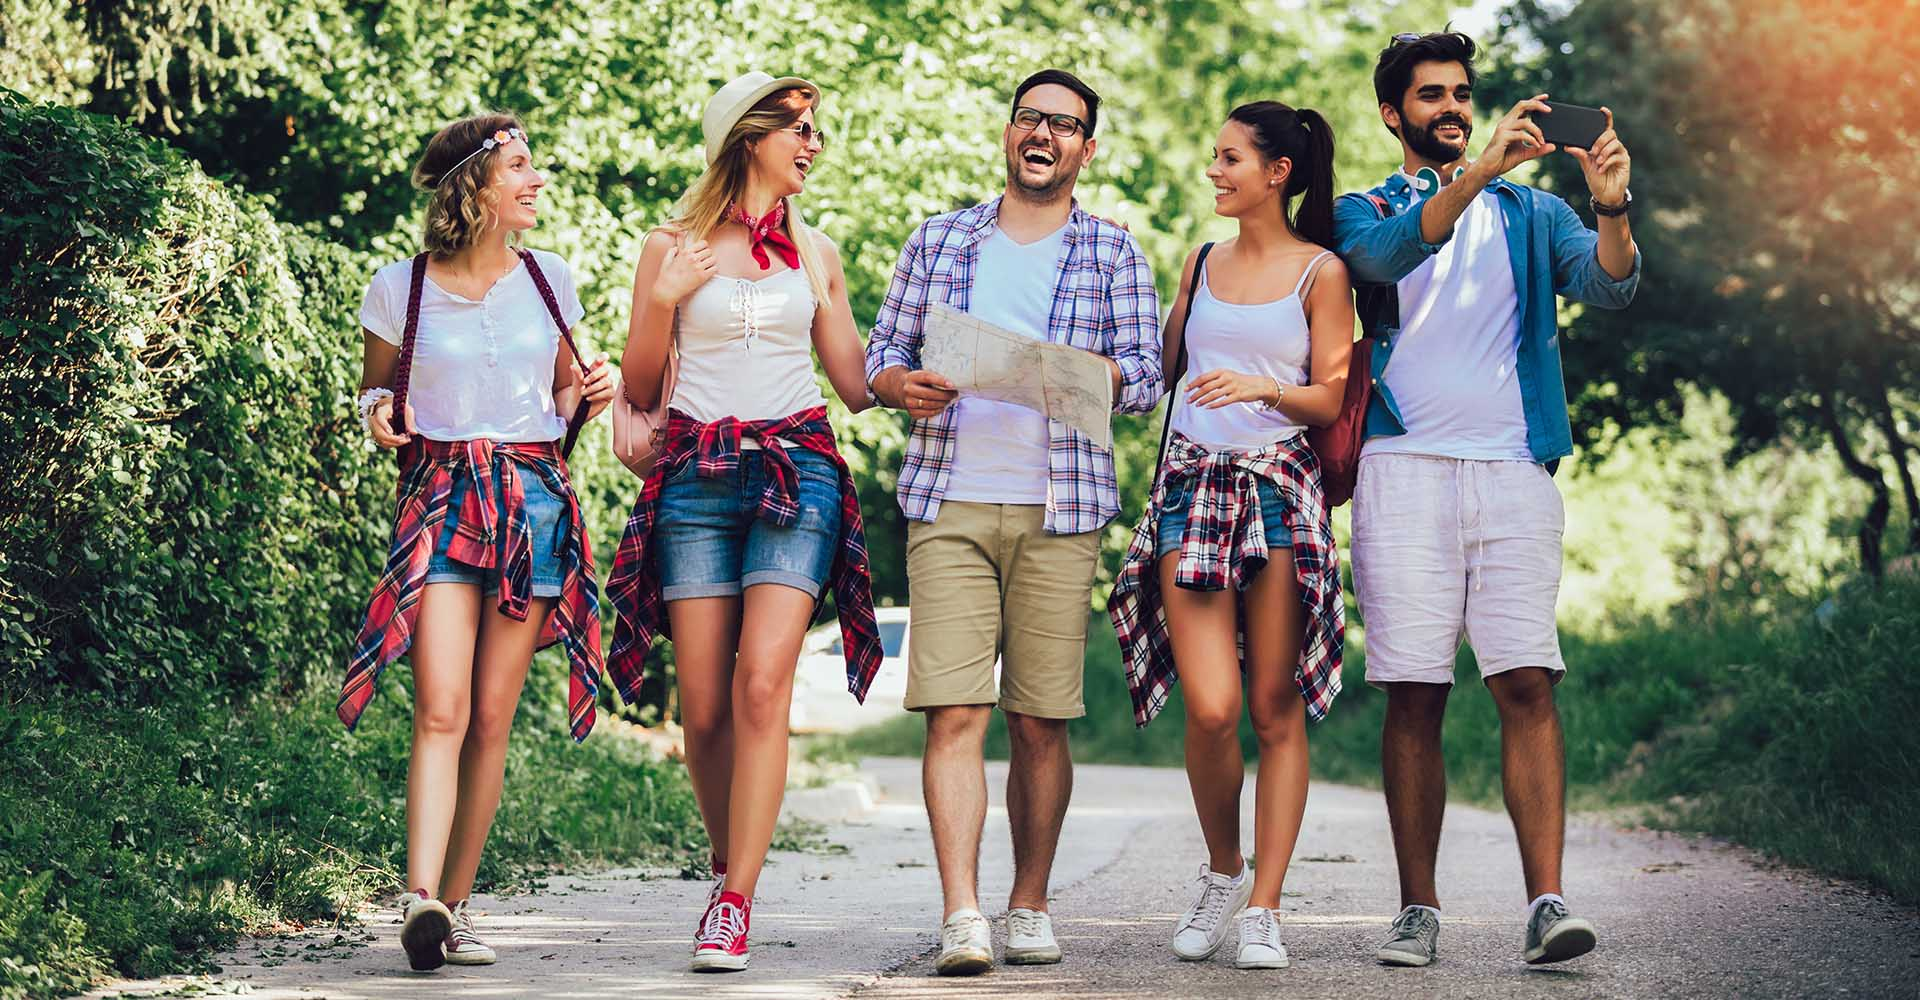 Group of five hapy friend walking with backpacks in woods